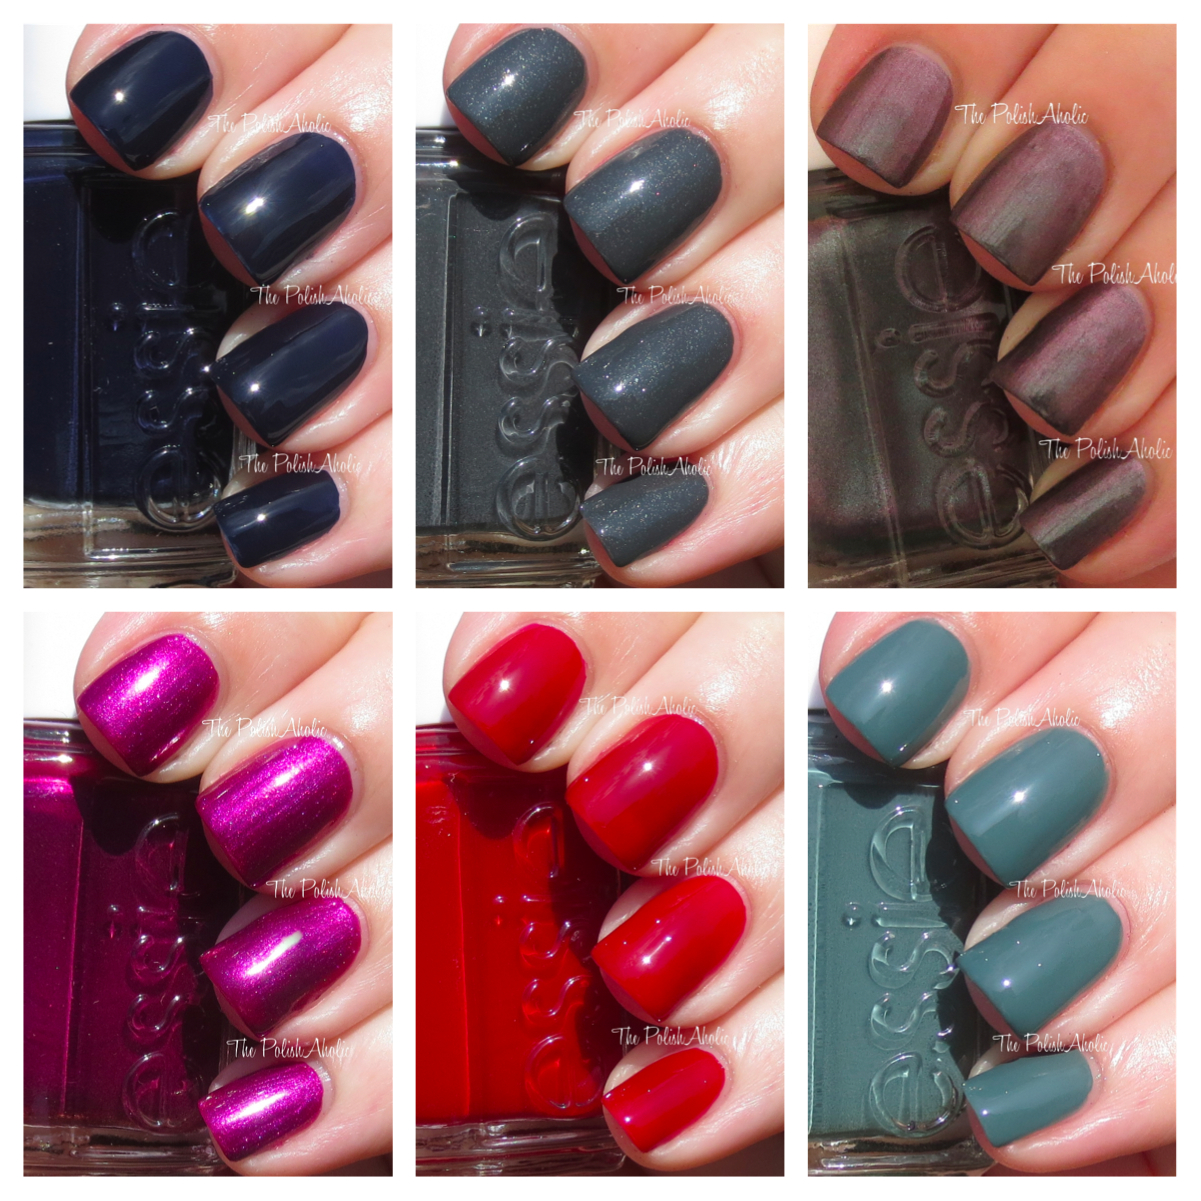 The PolishAholic: Essie Fall 2013 Collection Swatches